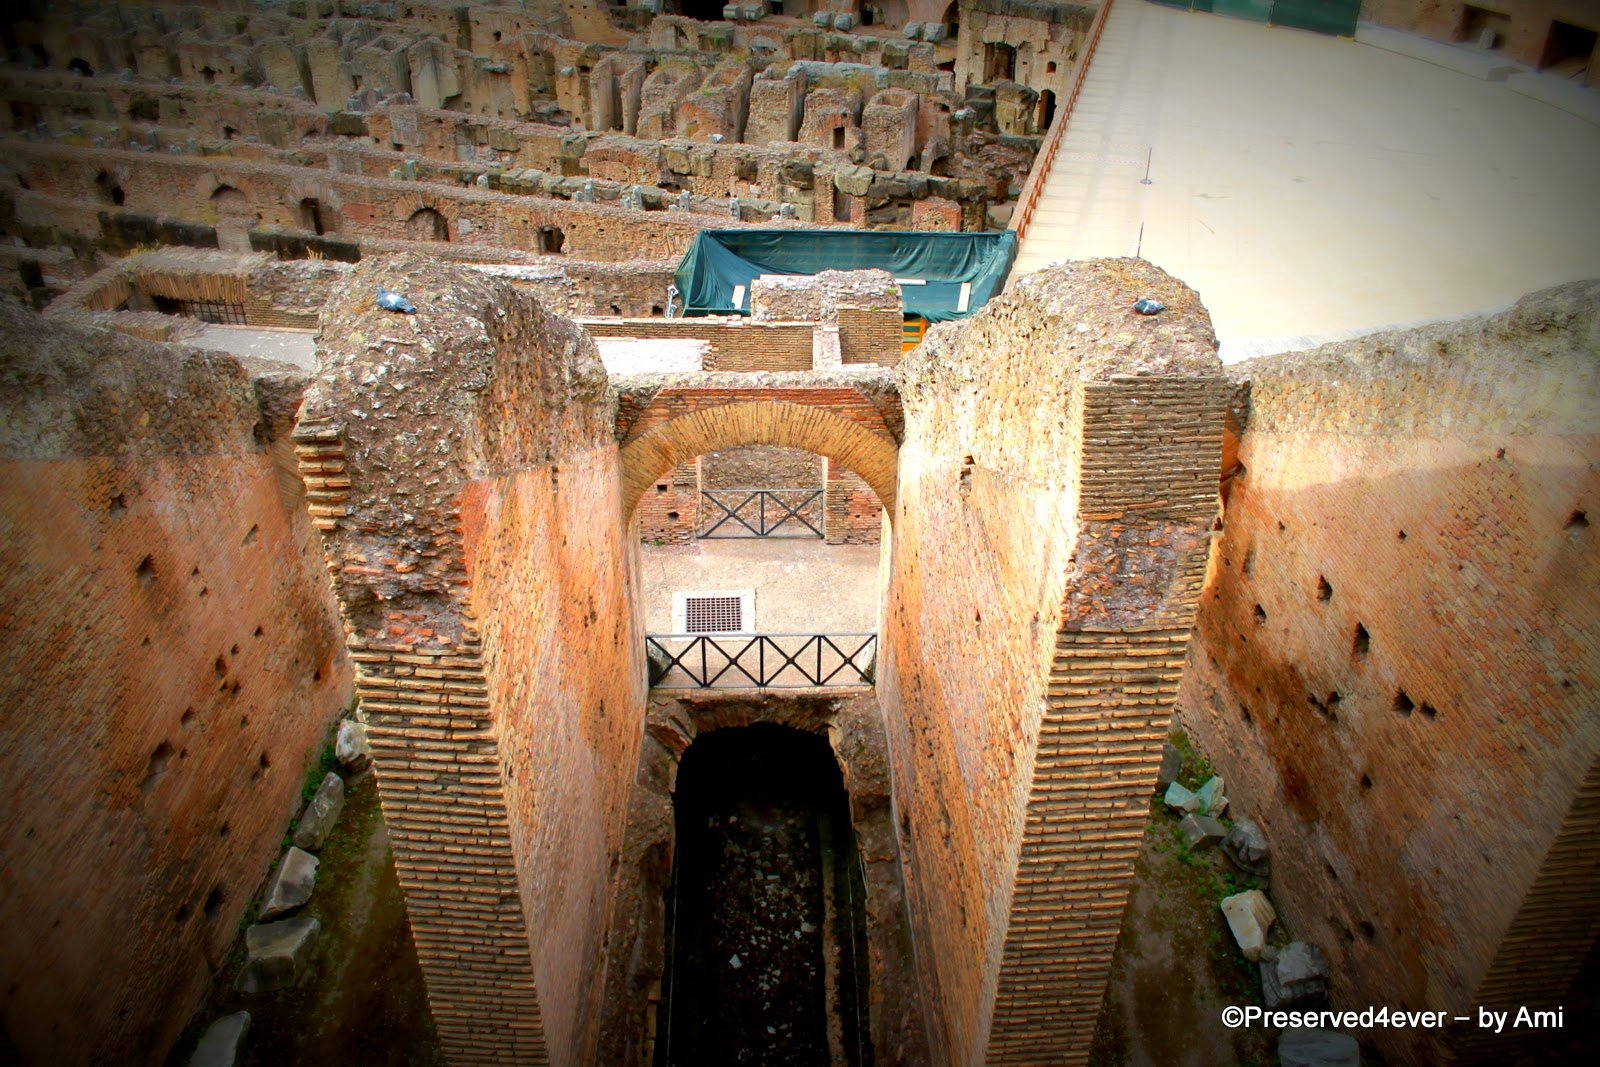 Glimpse of the underground tunnels of the Colosseum